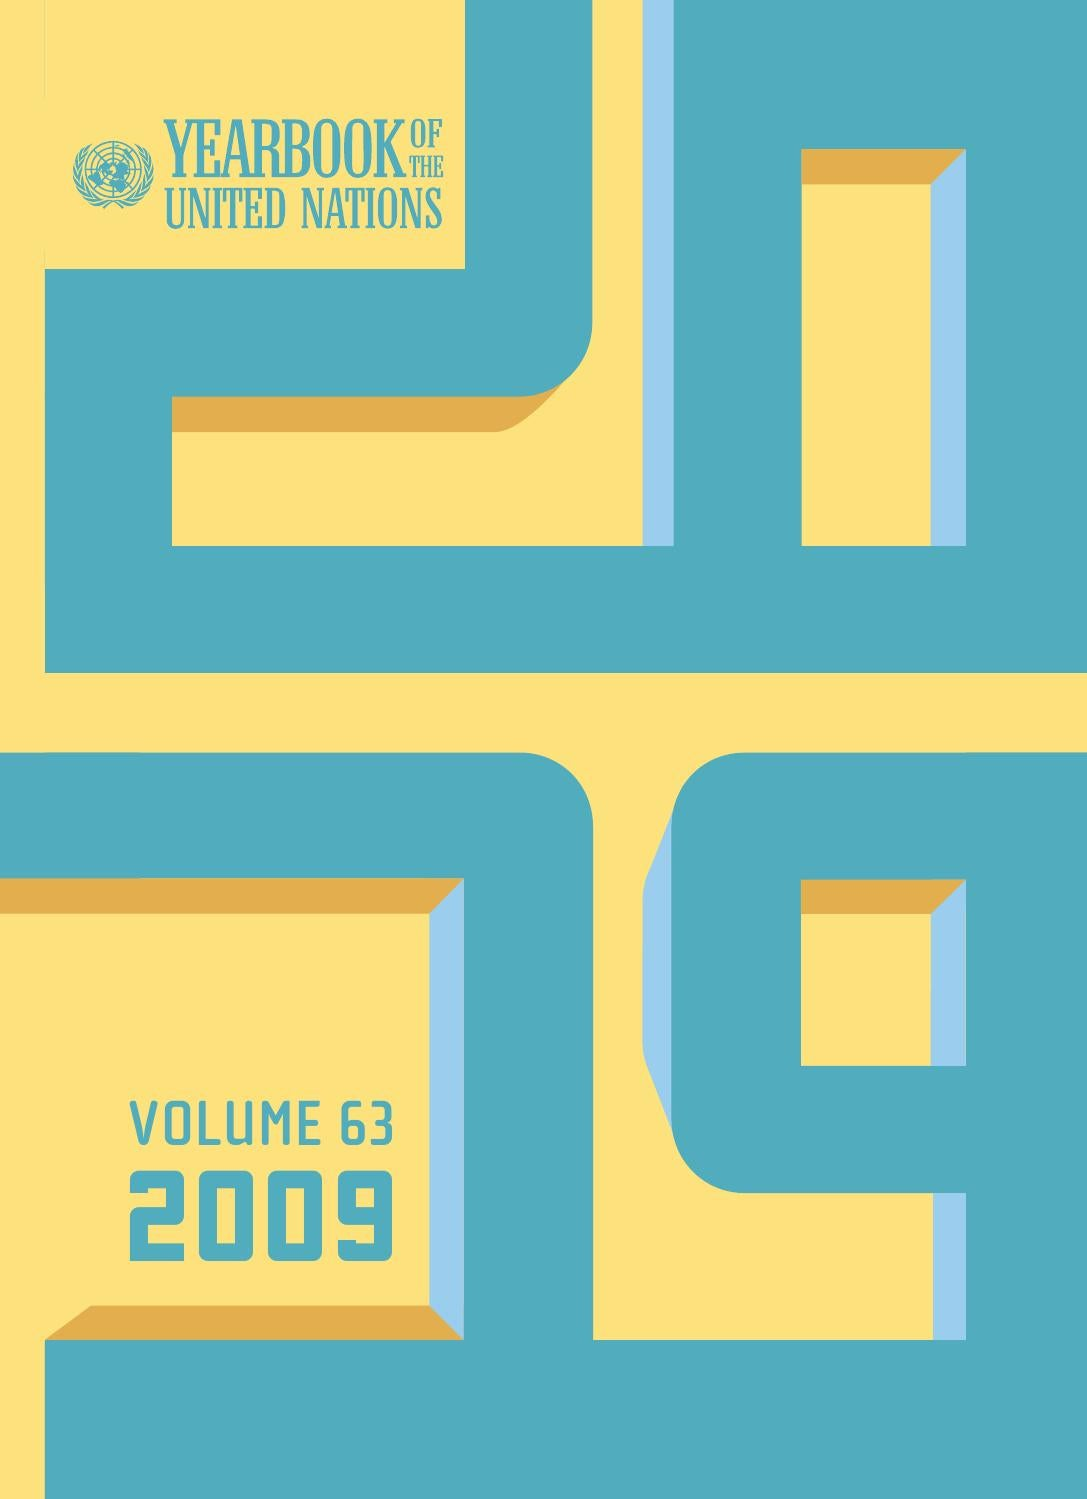 cb29eb8a655 Yearbook of the United Nations 2009 by United Nations Publications - issuu